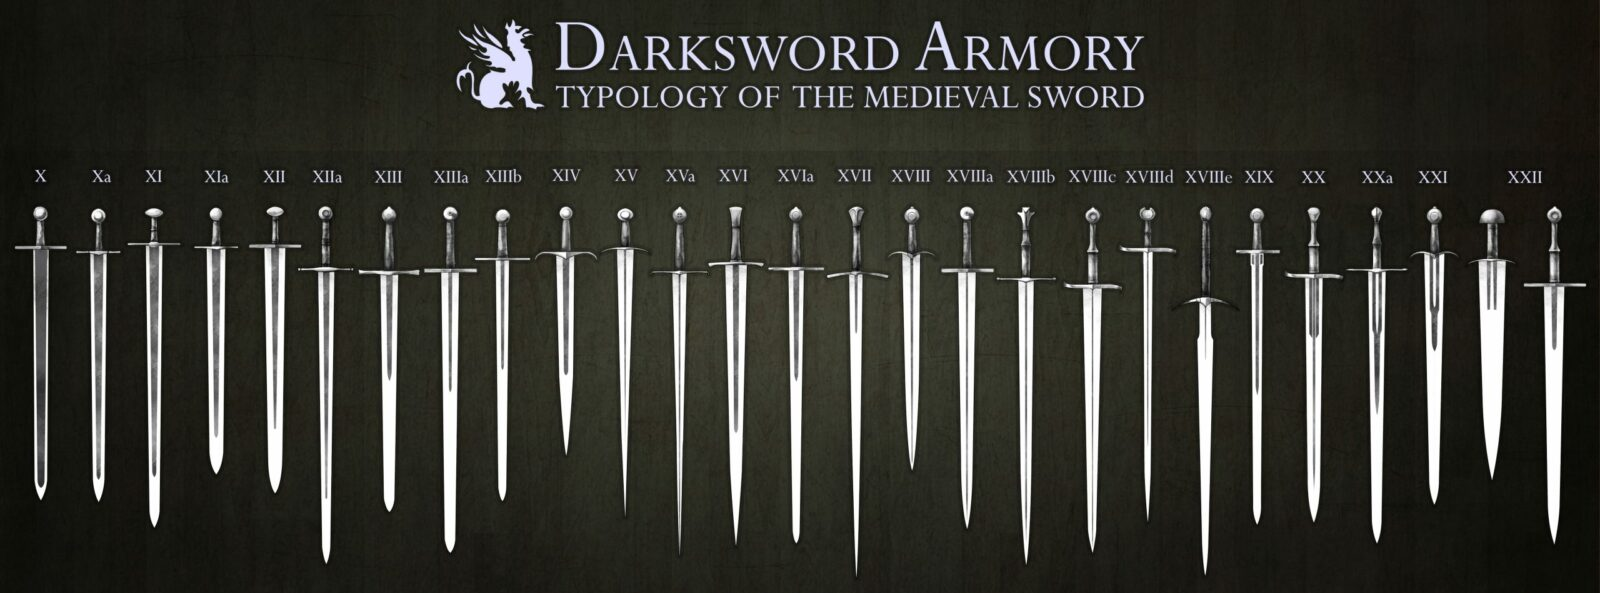 Typology-Darksword-Armory-medieval-swords